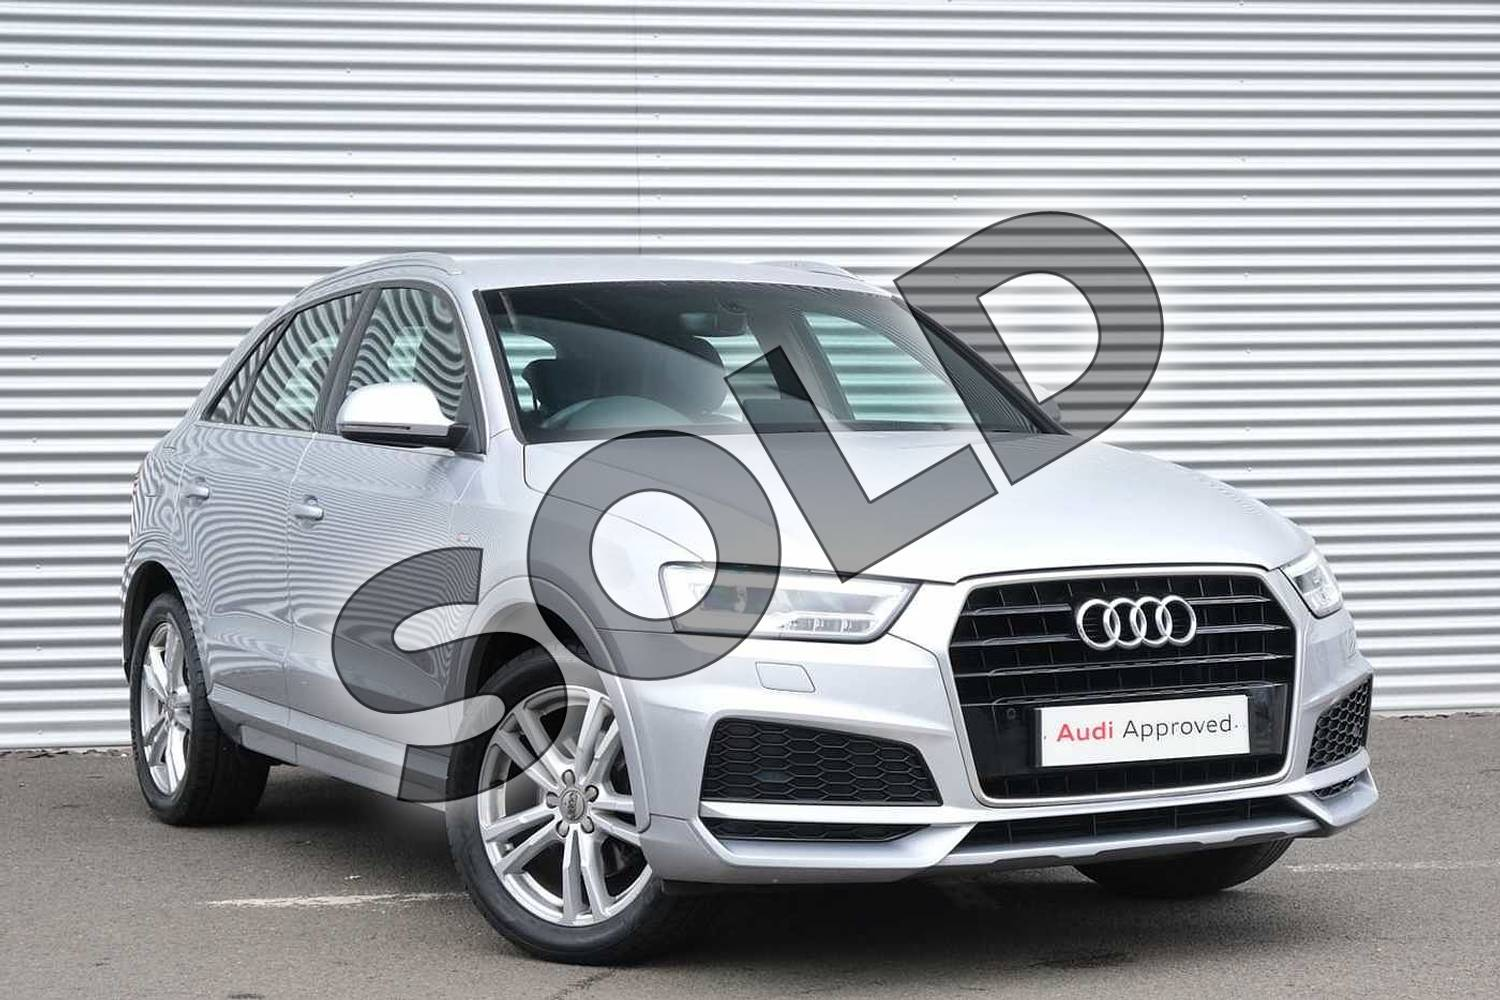 2017 Audi Q3 Estate Special Editions 1.4T FSI S Line Edition 5dr in Floret Silver Metallic at Coventry Audi